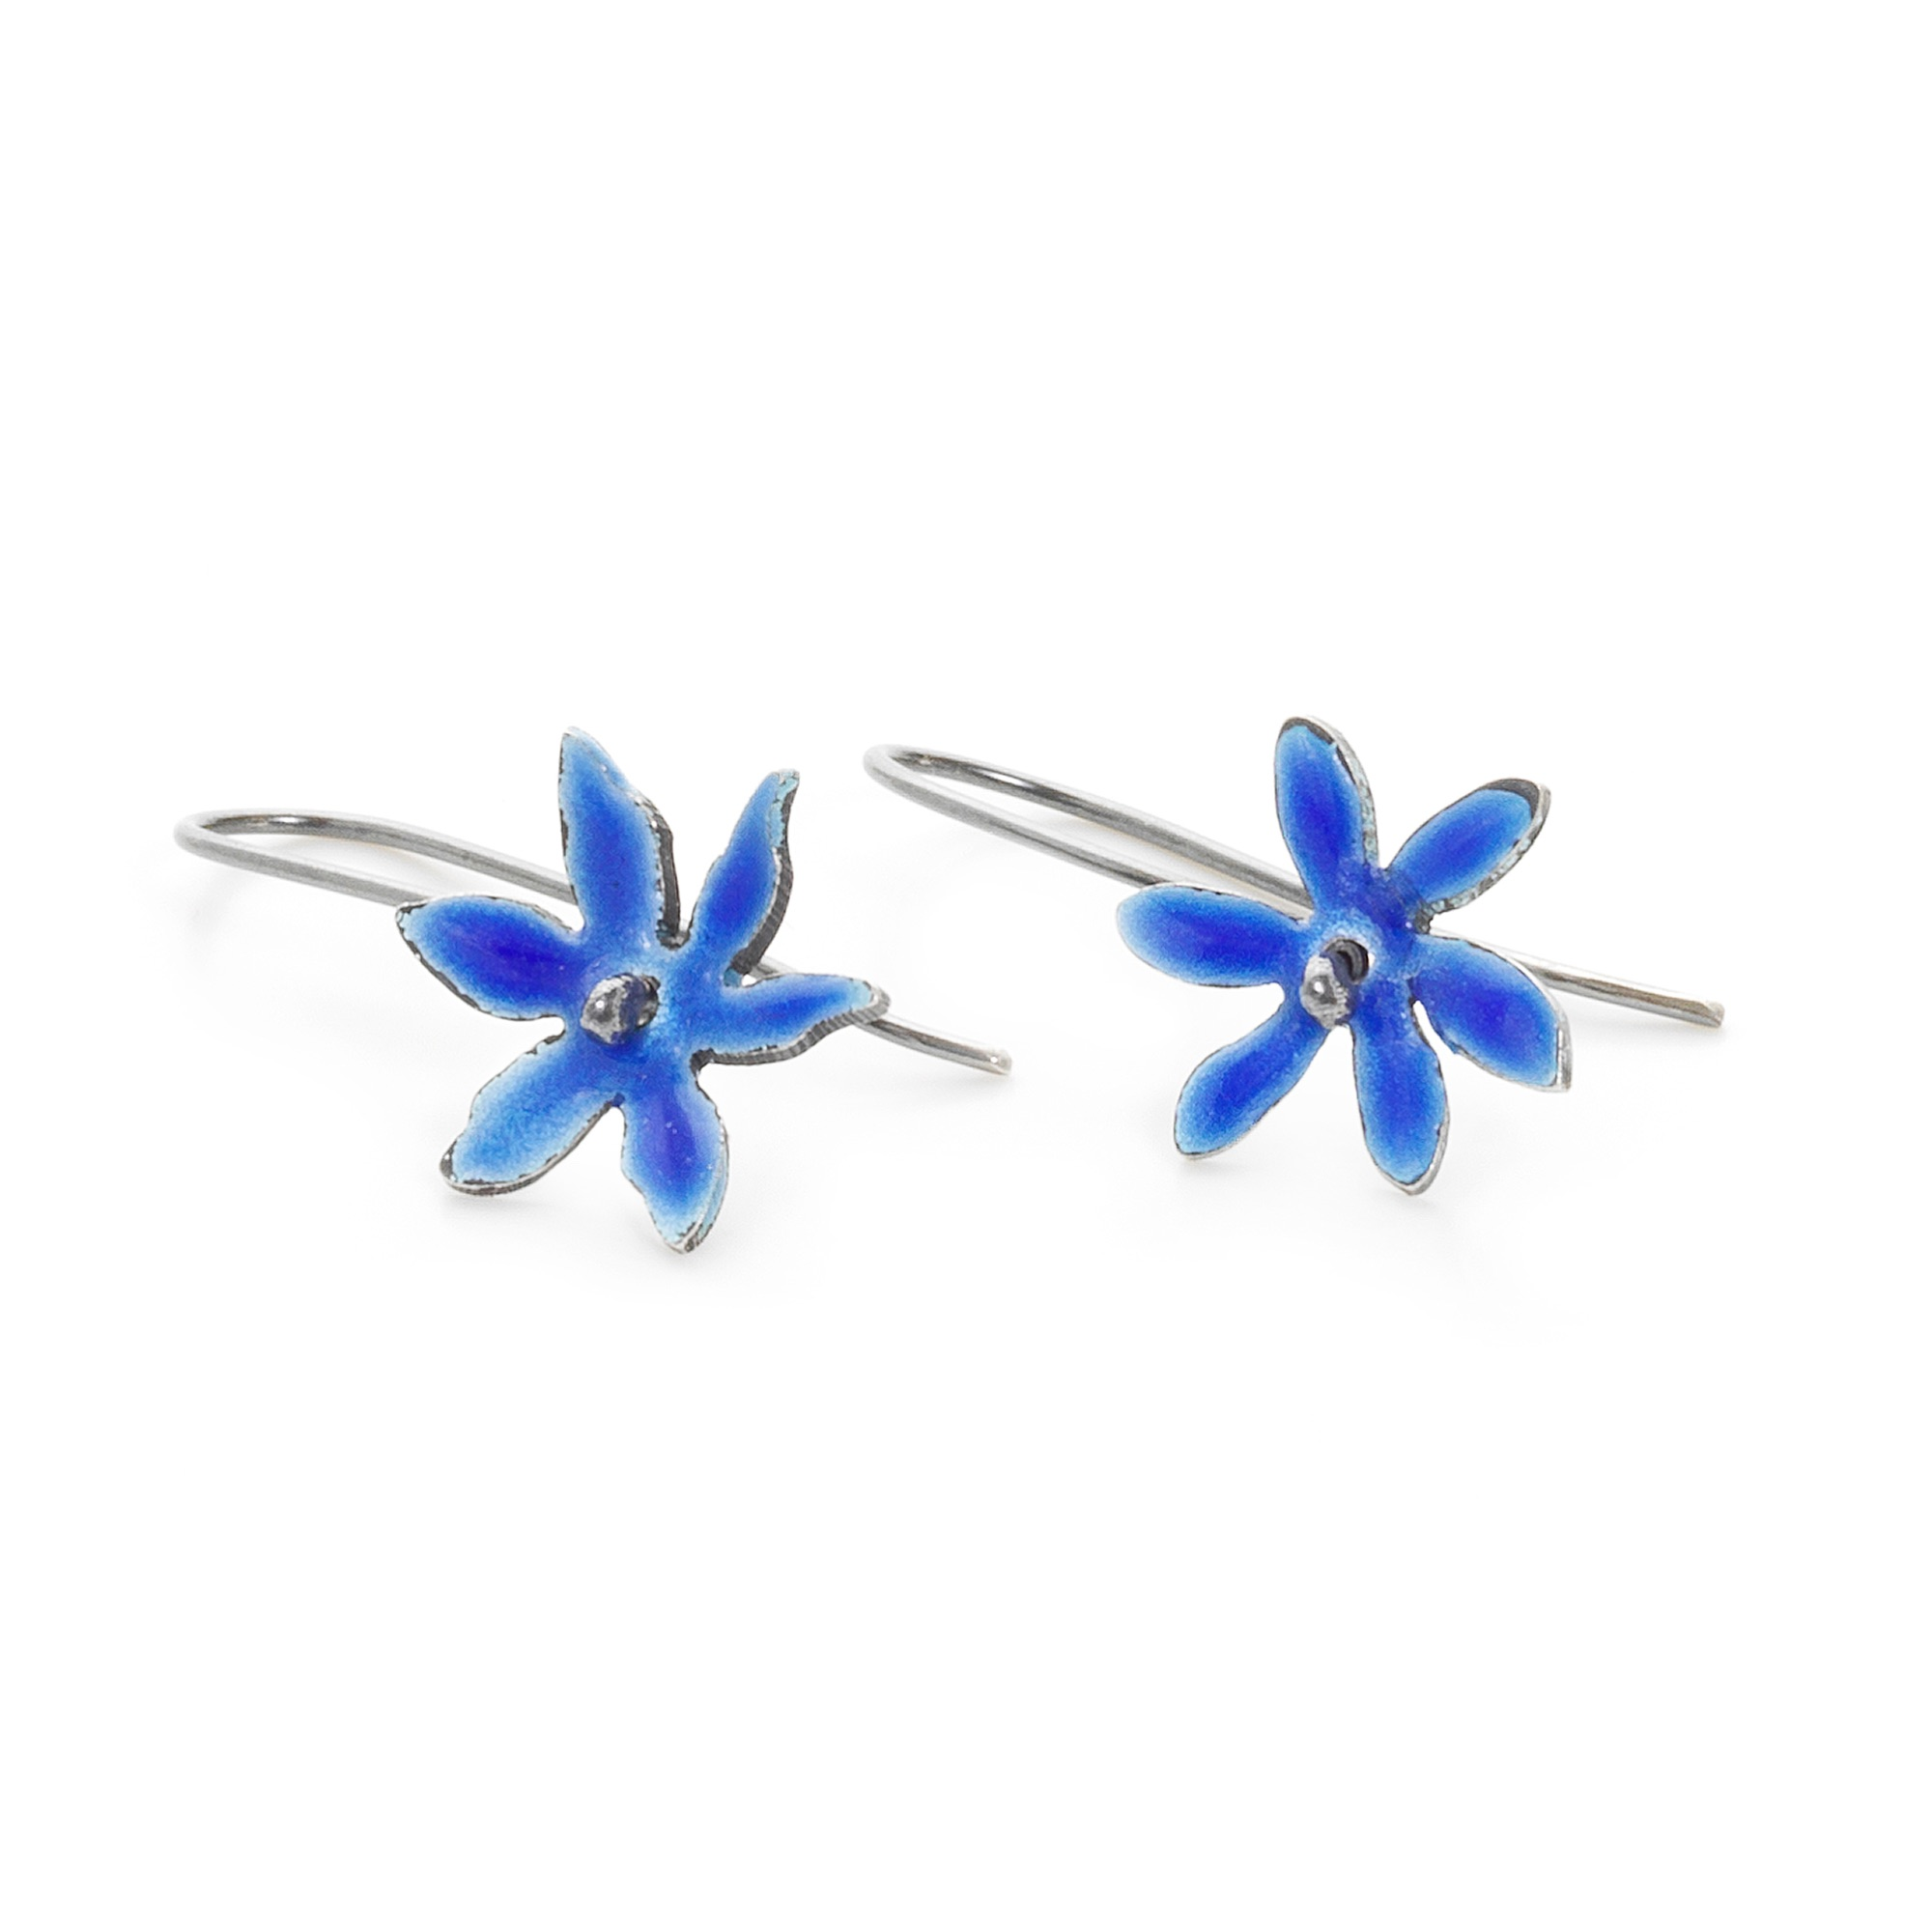 cathy-newell-price-enamel-flower-earrings